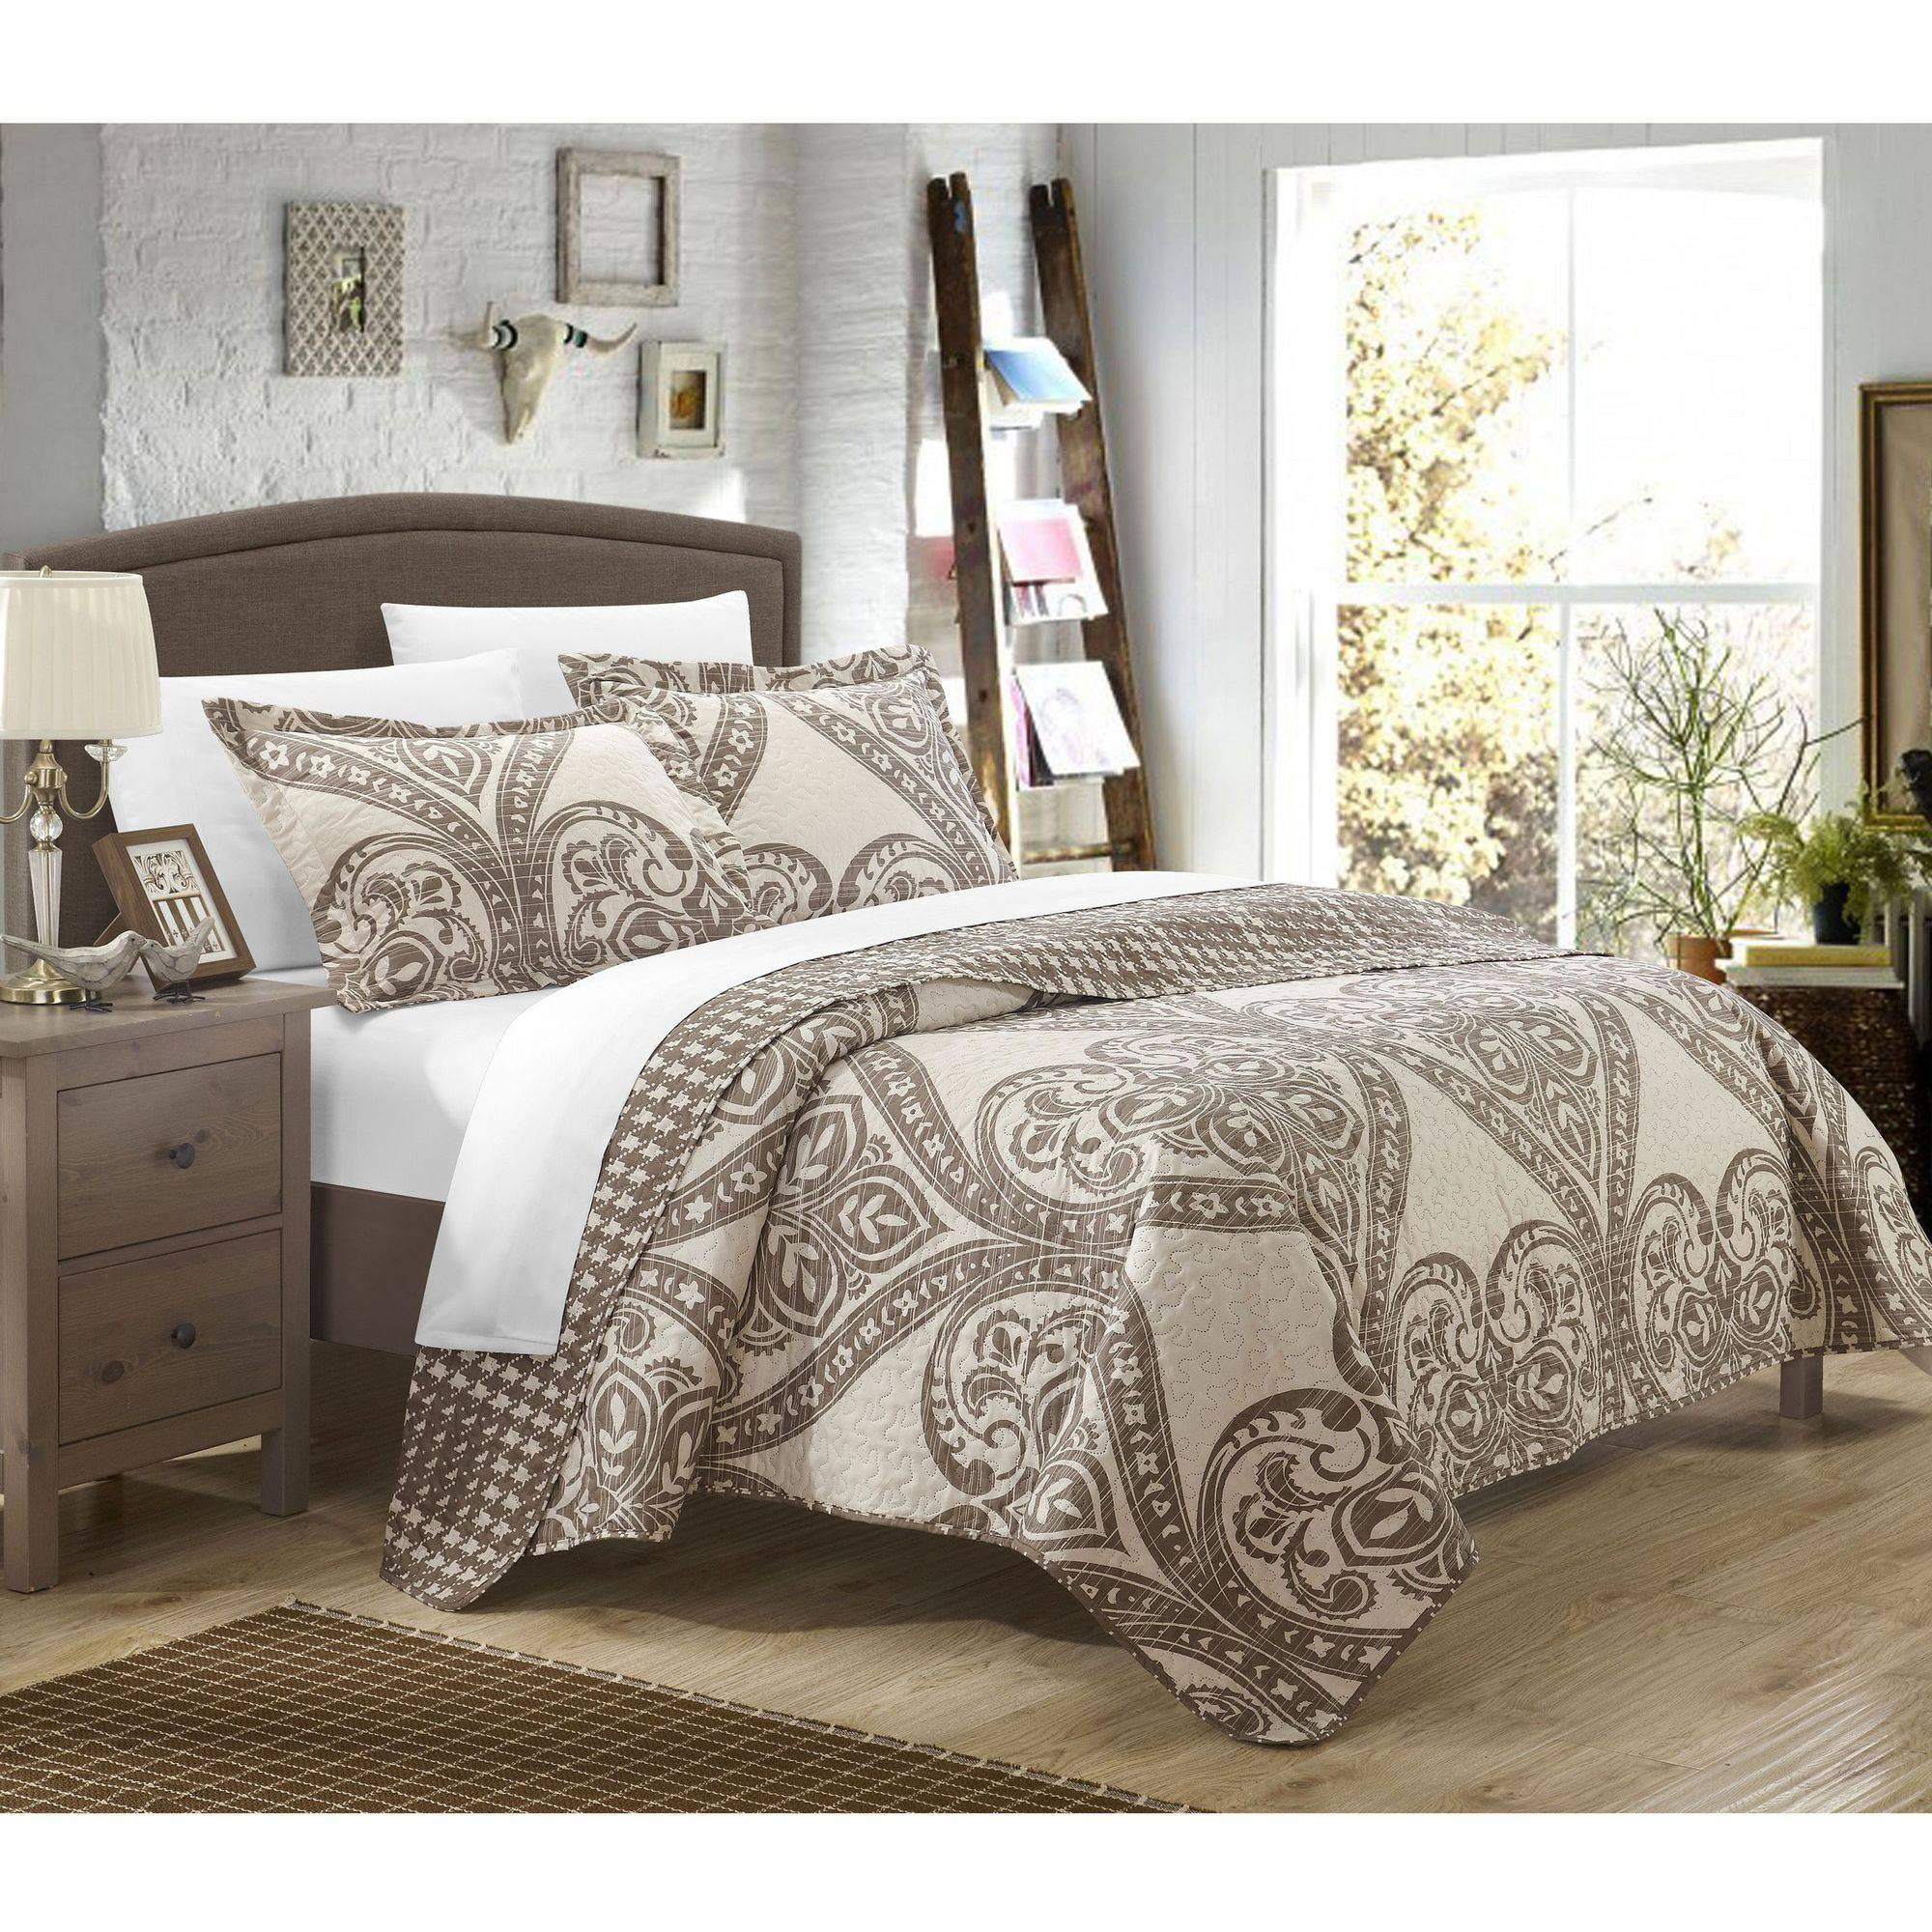 Chic Home 2-Piece Terni Reversible Printed Quilt Set by Chic Home